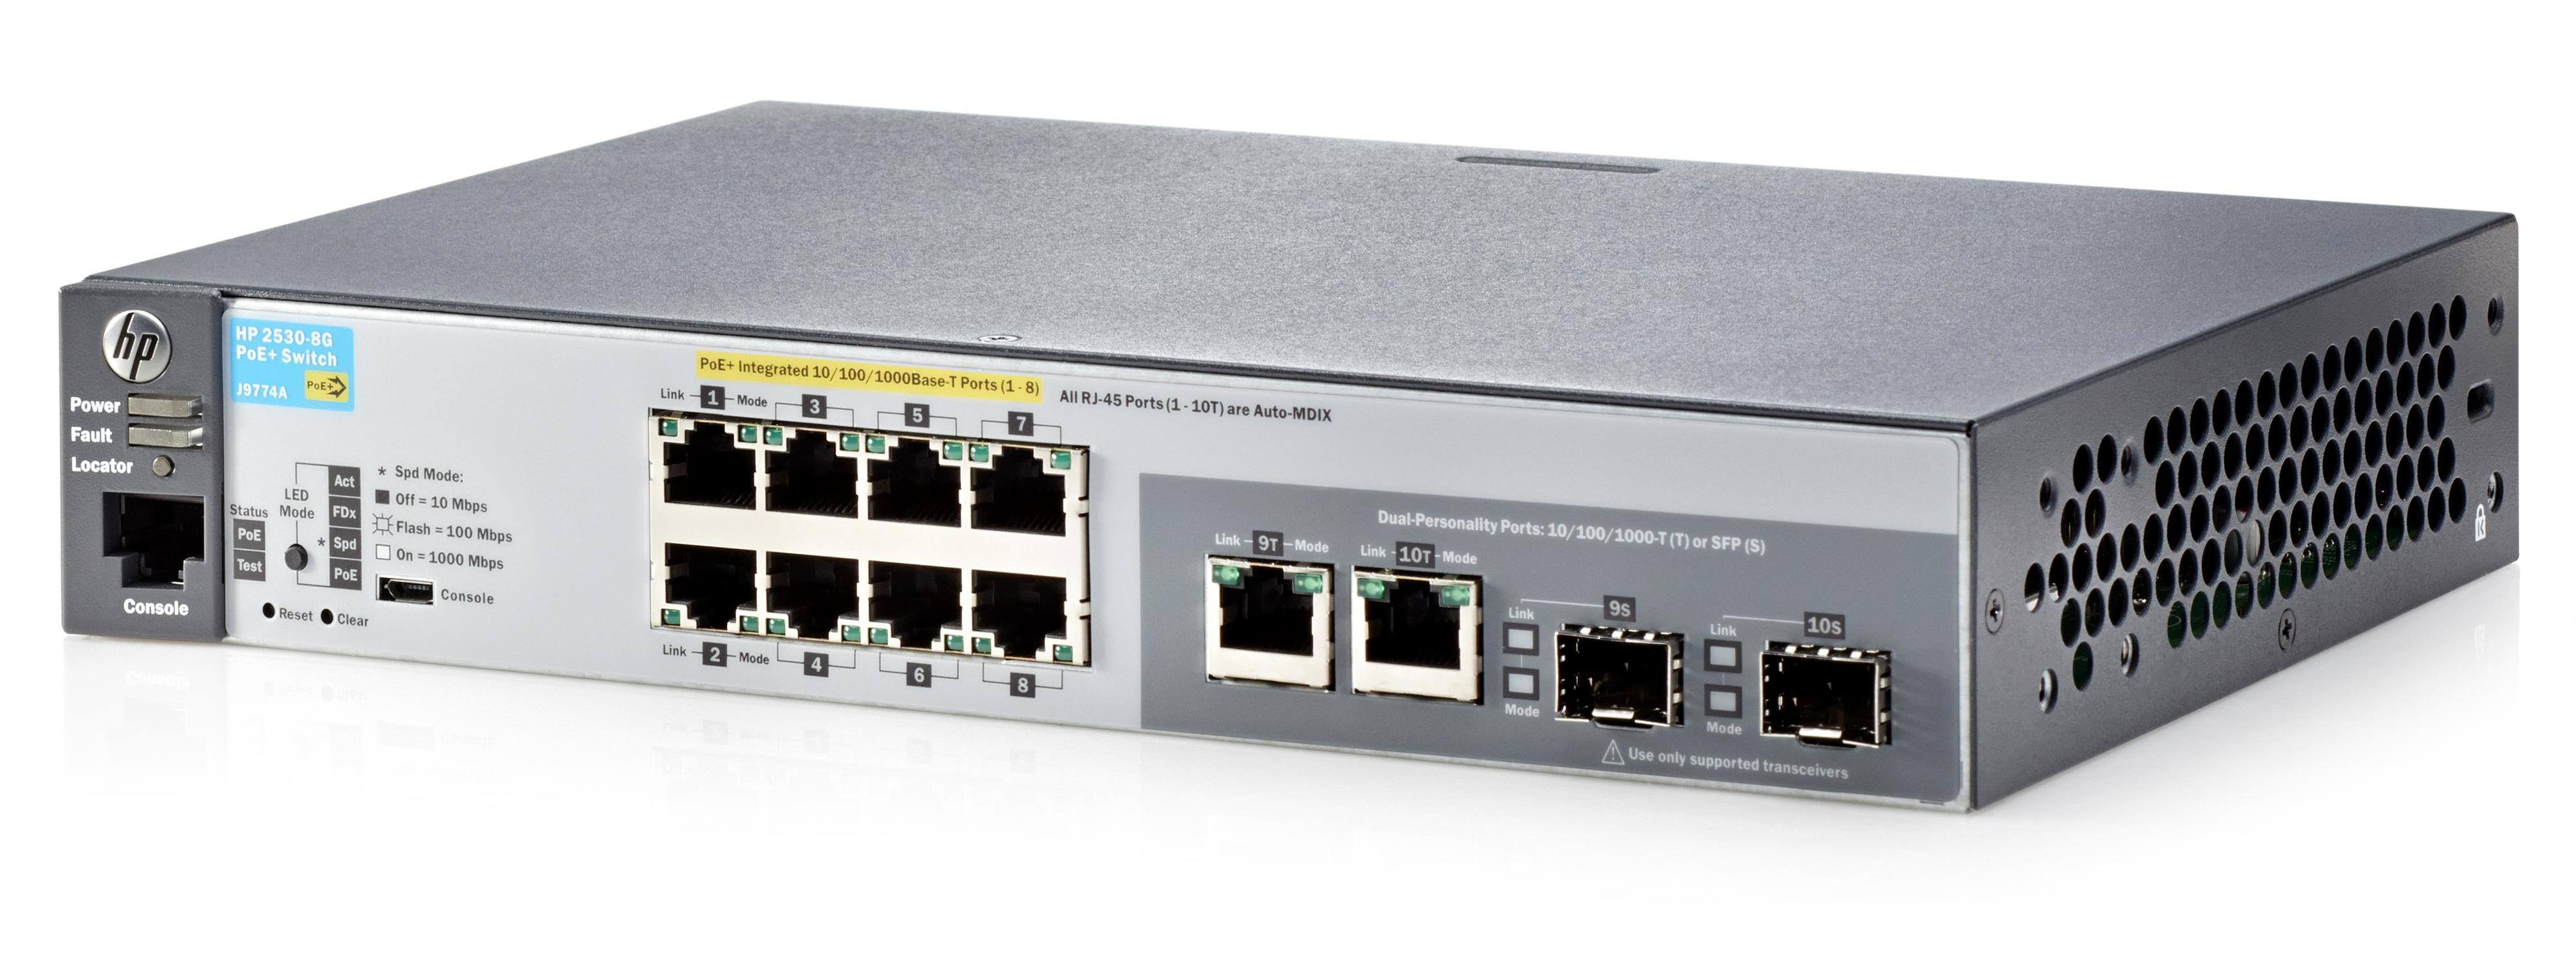 J9774A HP 2530-8G-PoE+ Managed network switch L2 Gigabit Ethernet  (10/100/1000) Power over Ethernet (PoE) 1U Grey - LaserNetworks Rendszerház